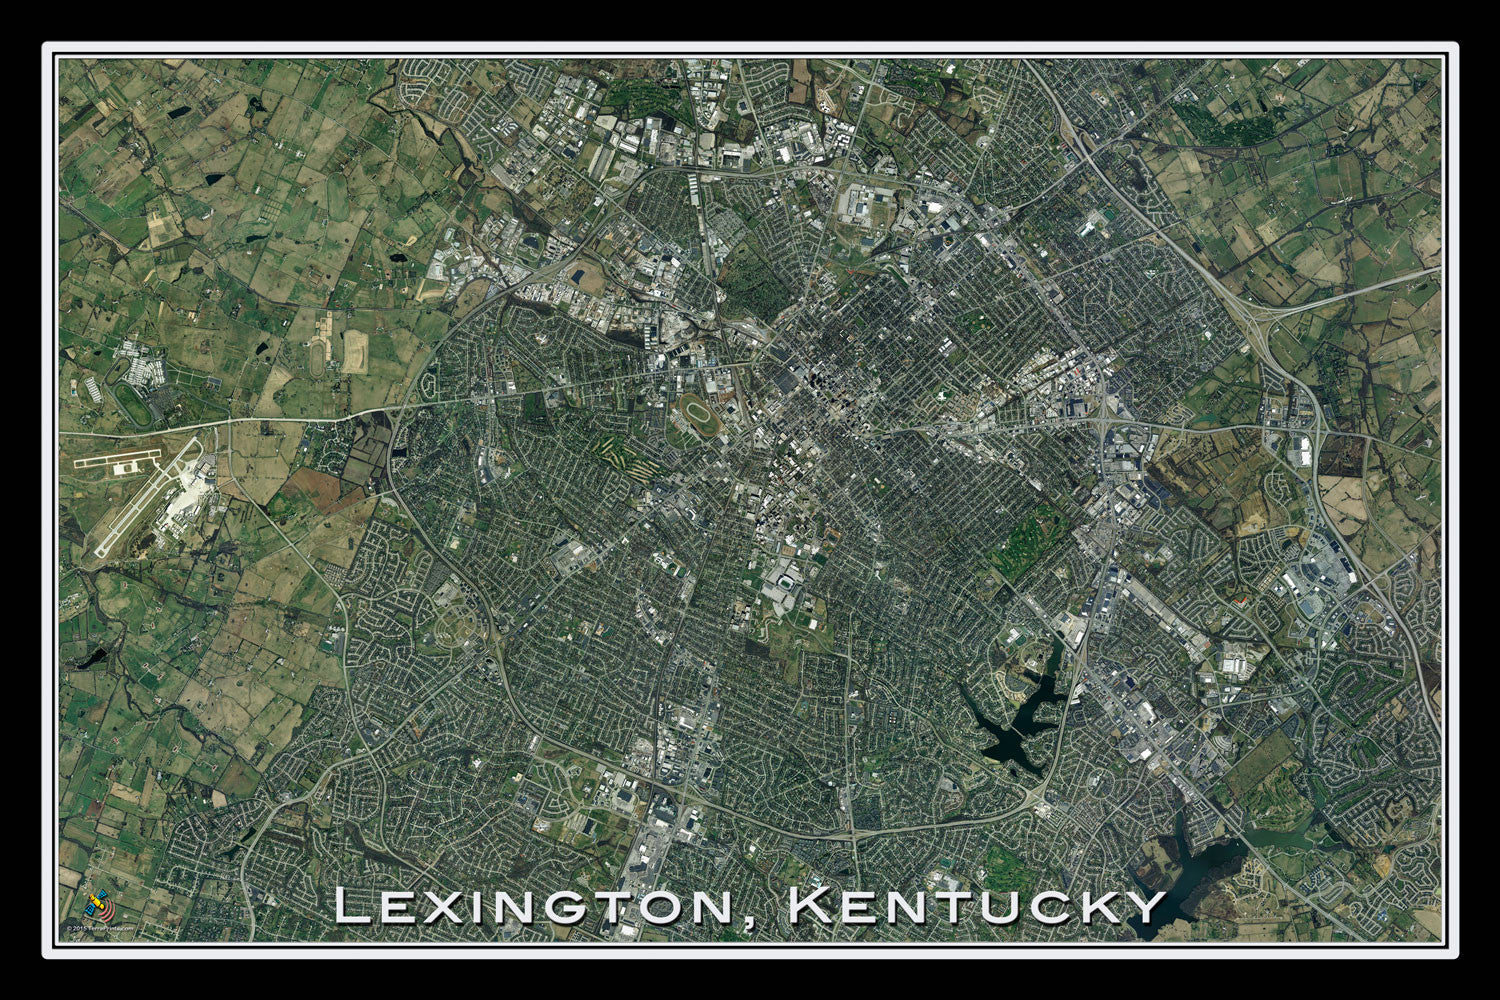 Lexington Kentucky Satellite Poster Map by TerraPrints.com. Available in multiple sizes with free shipping in the USA.